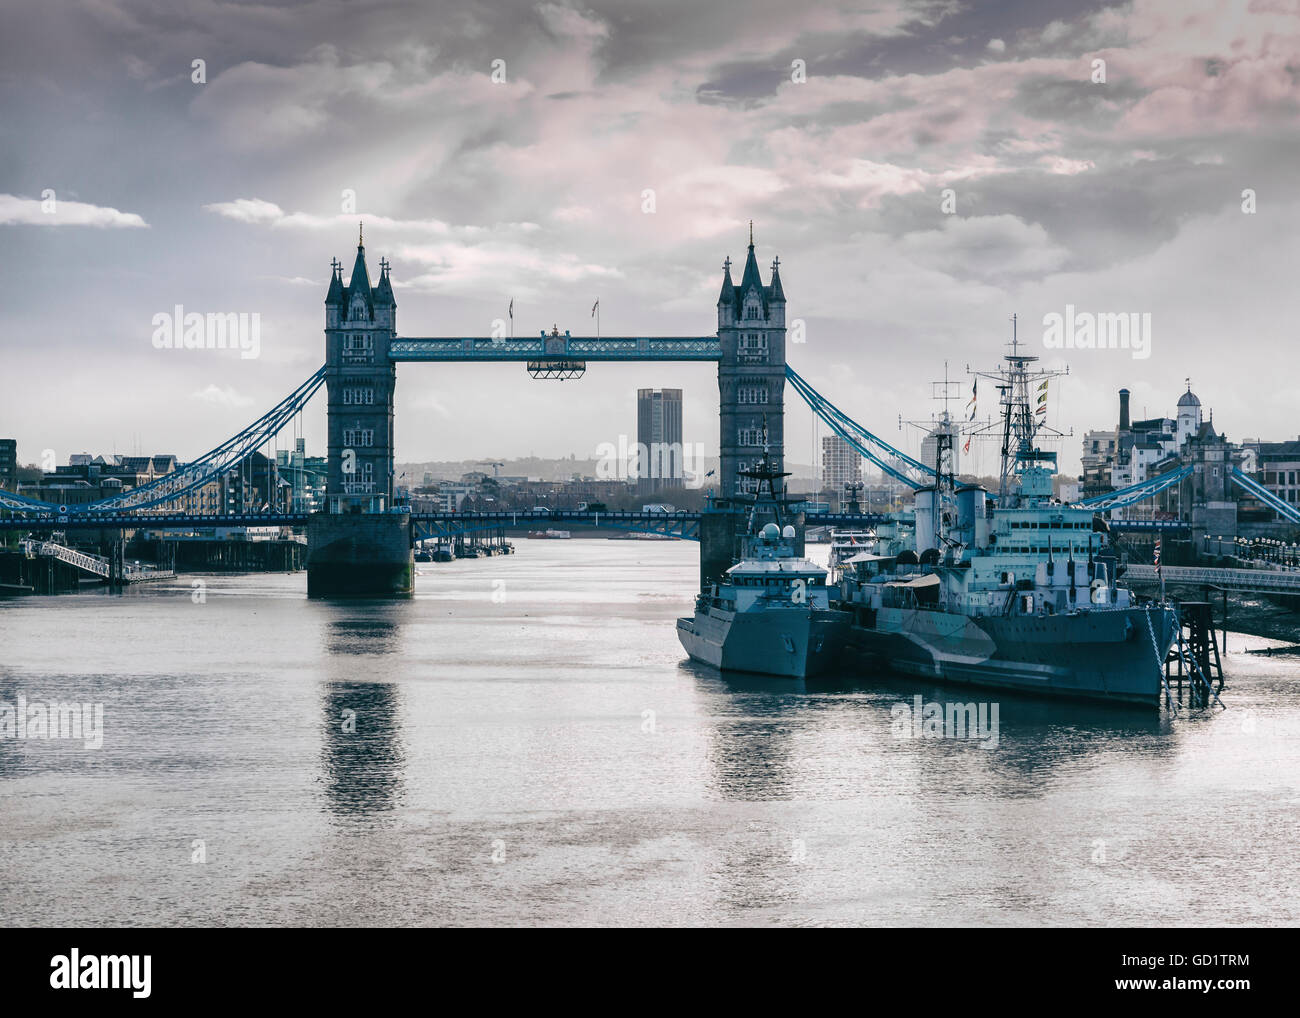 Tower Bridge, HMS Belfast ship and River Thames. London, United Kingdom, Europe Stock Photo